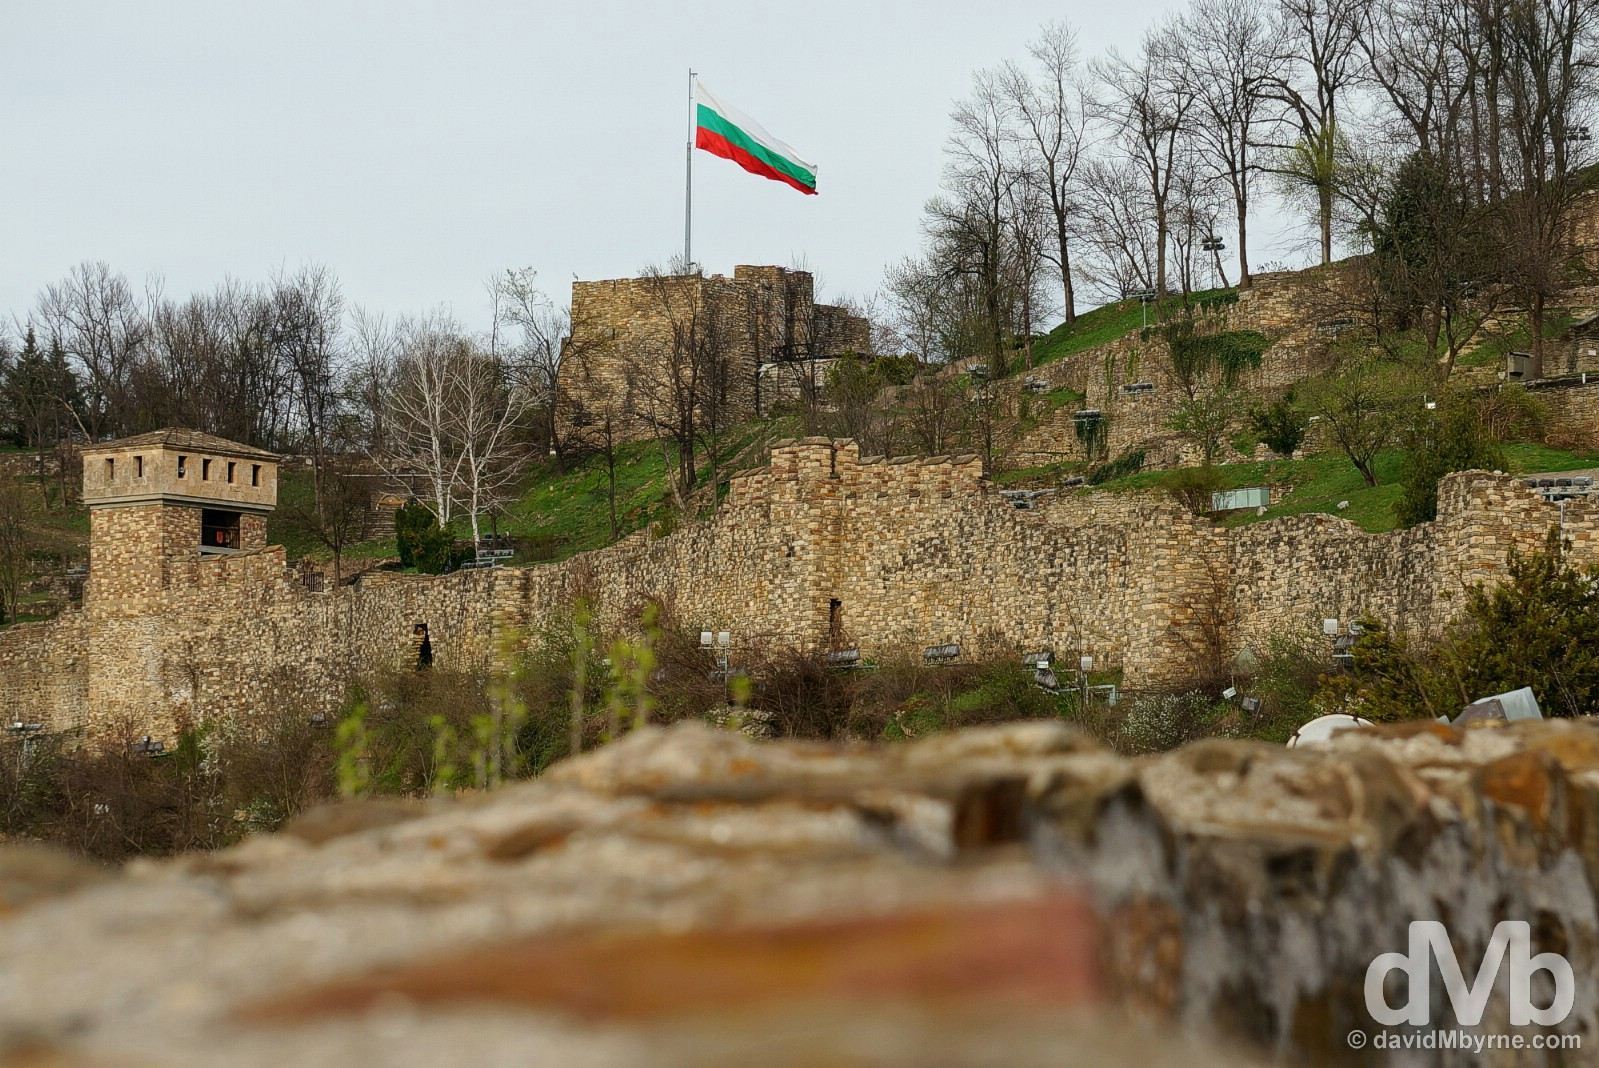 Tsarevets Fortress, Veliko Tarnovo, Bulgaria. March 30, 2015.